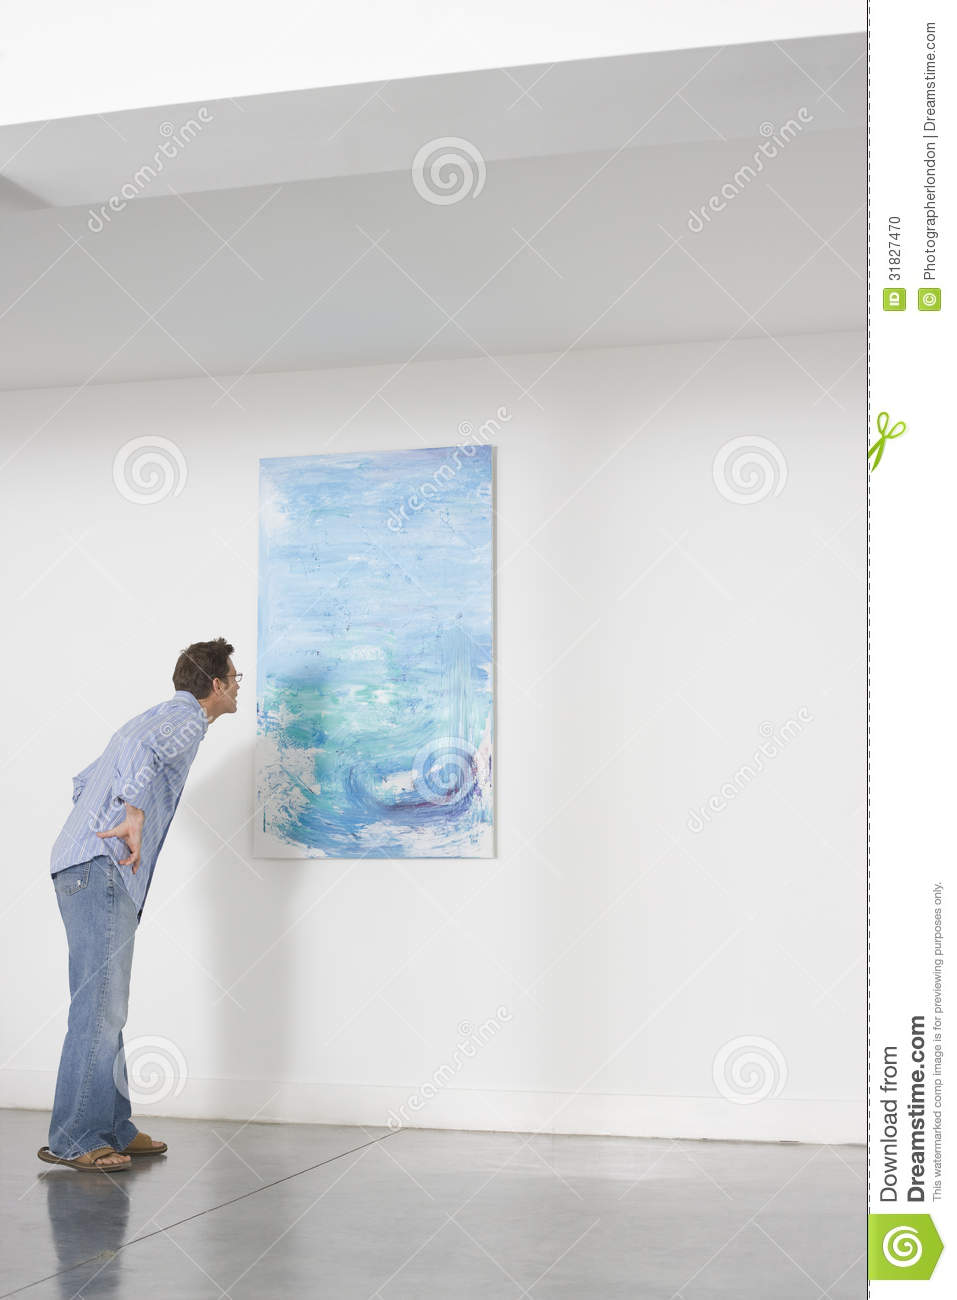 Man Observing Painting In Art Gallery Stock Photo Image 31827470